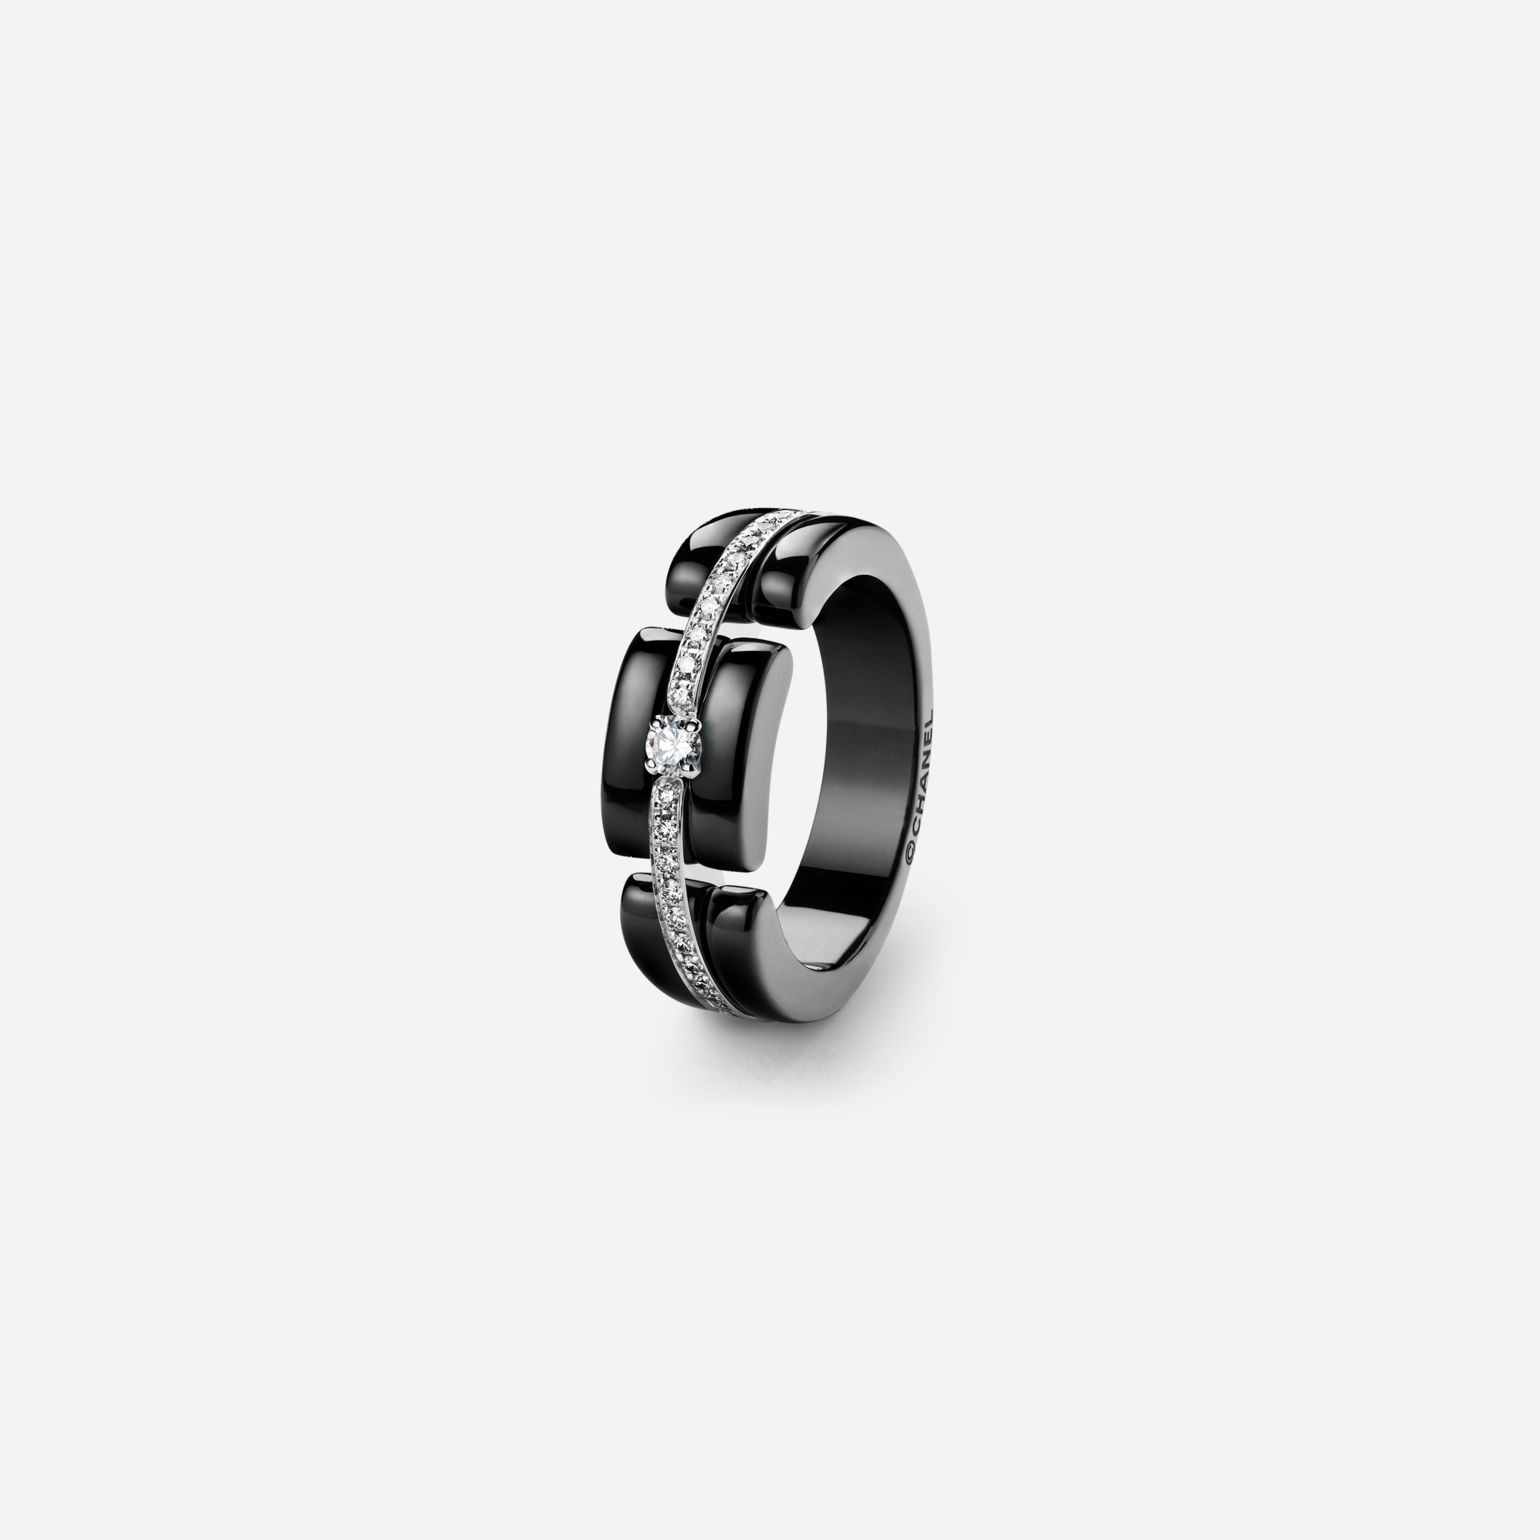 Ultra ring Ultra ring, medium version, in black ceramic, 18K white gold and diamonds with one center diamond